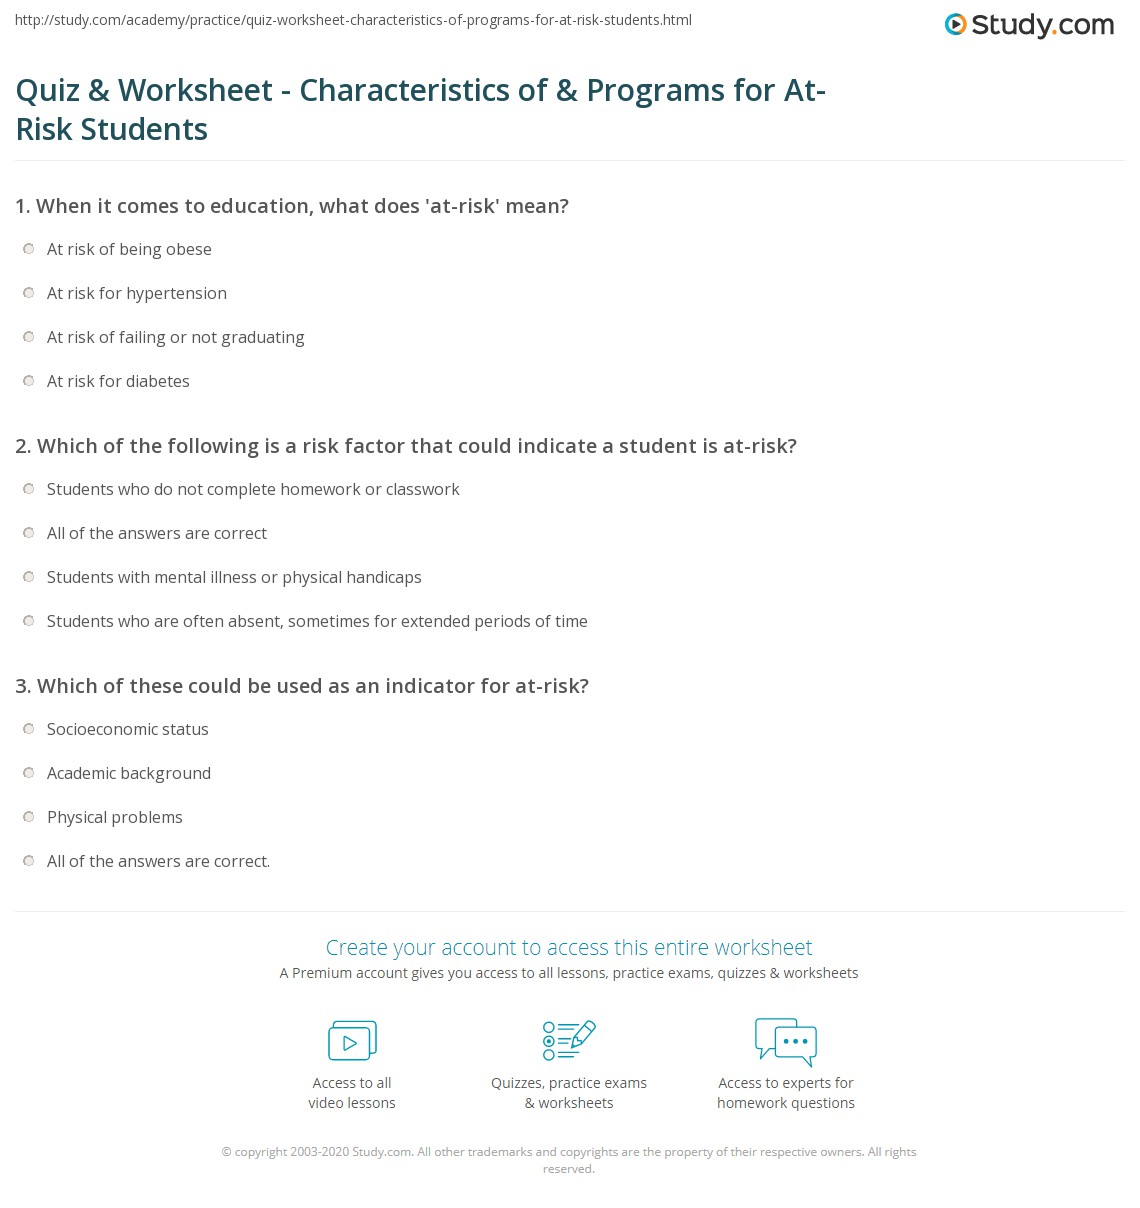 Quiz & Worksheet - Characteristics of & Programs for At-Risk ...